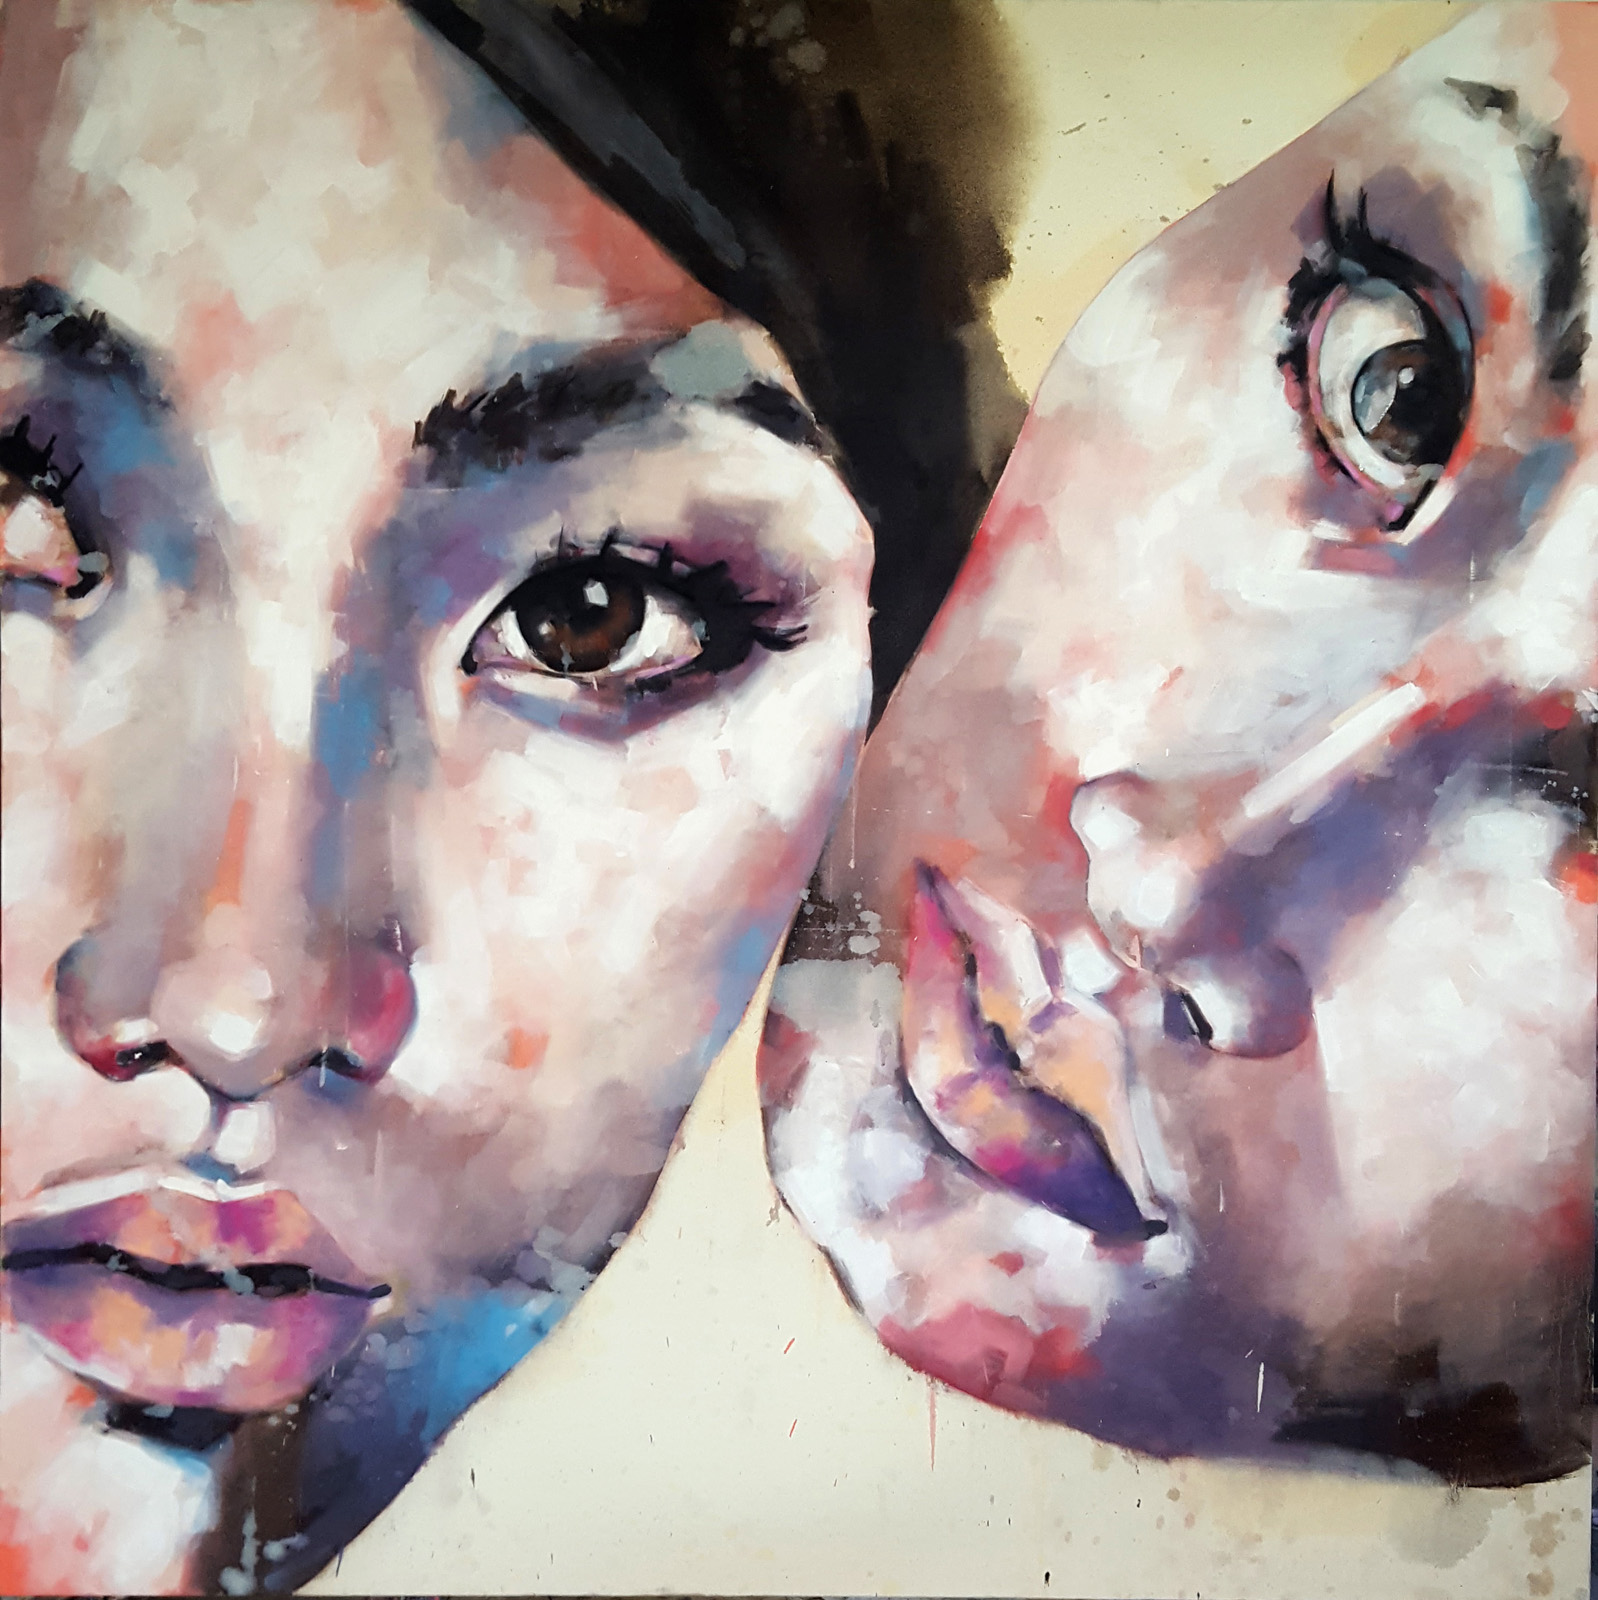 11-18-17 double portrait study, oil on canvas, 150x150cm